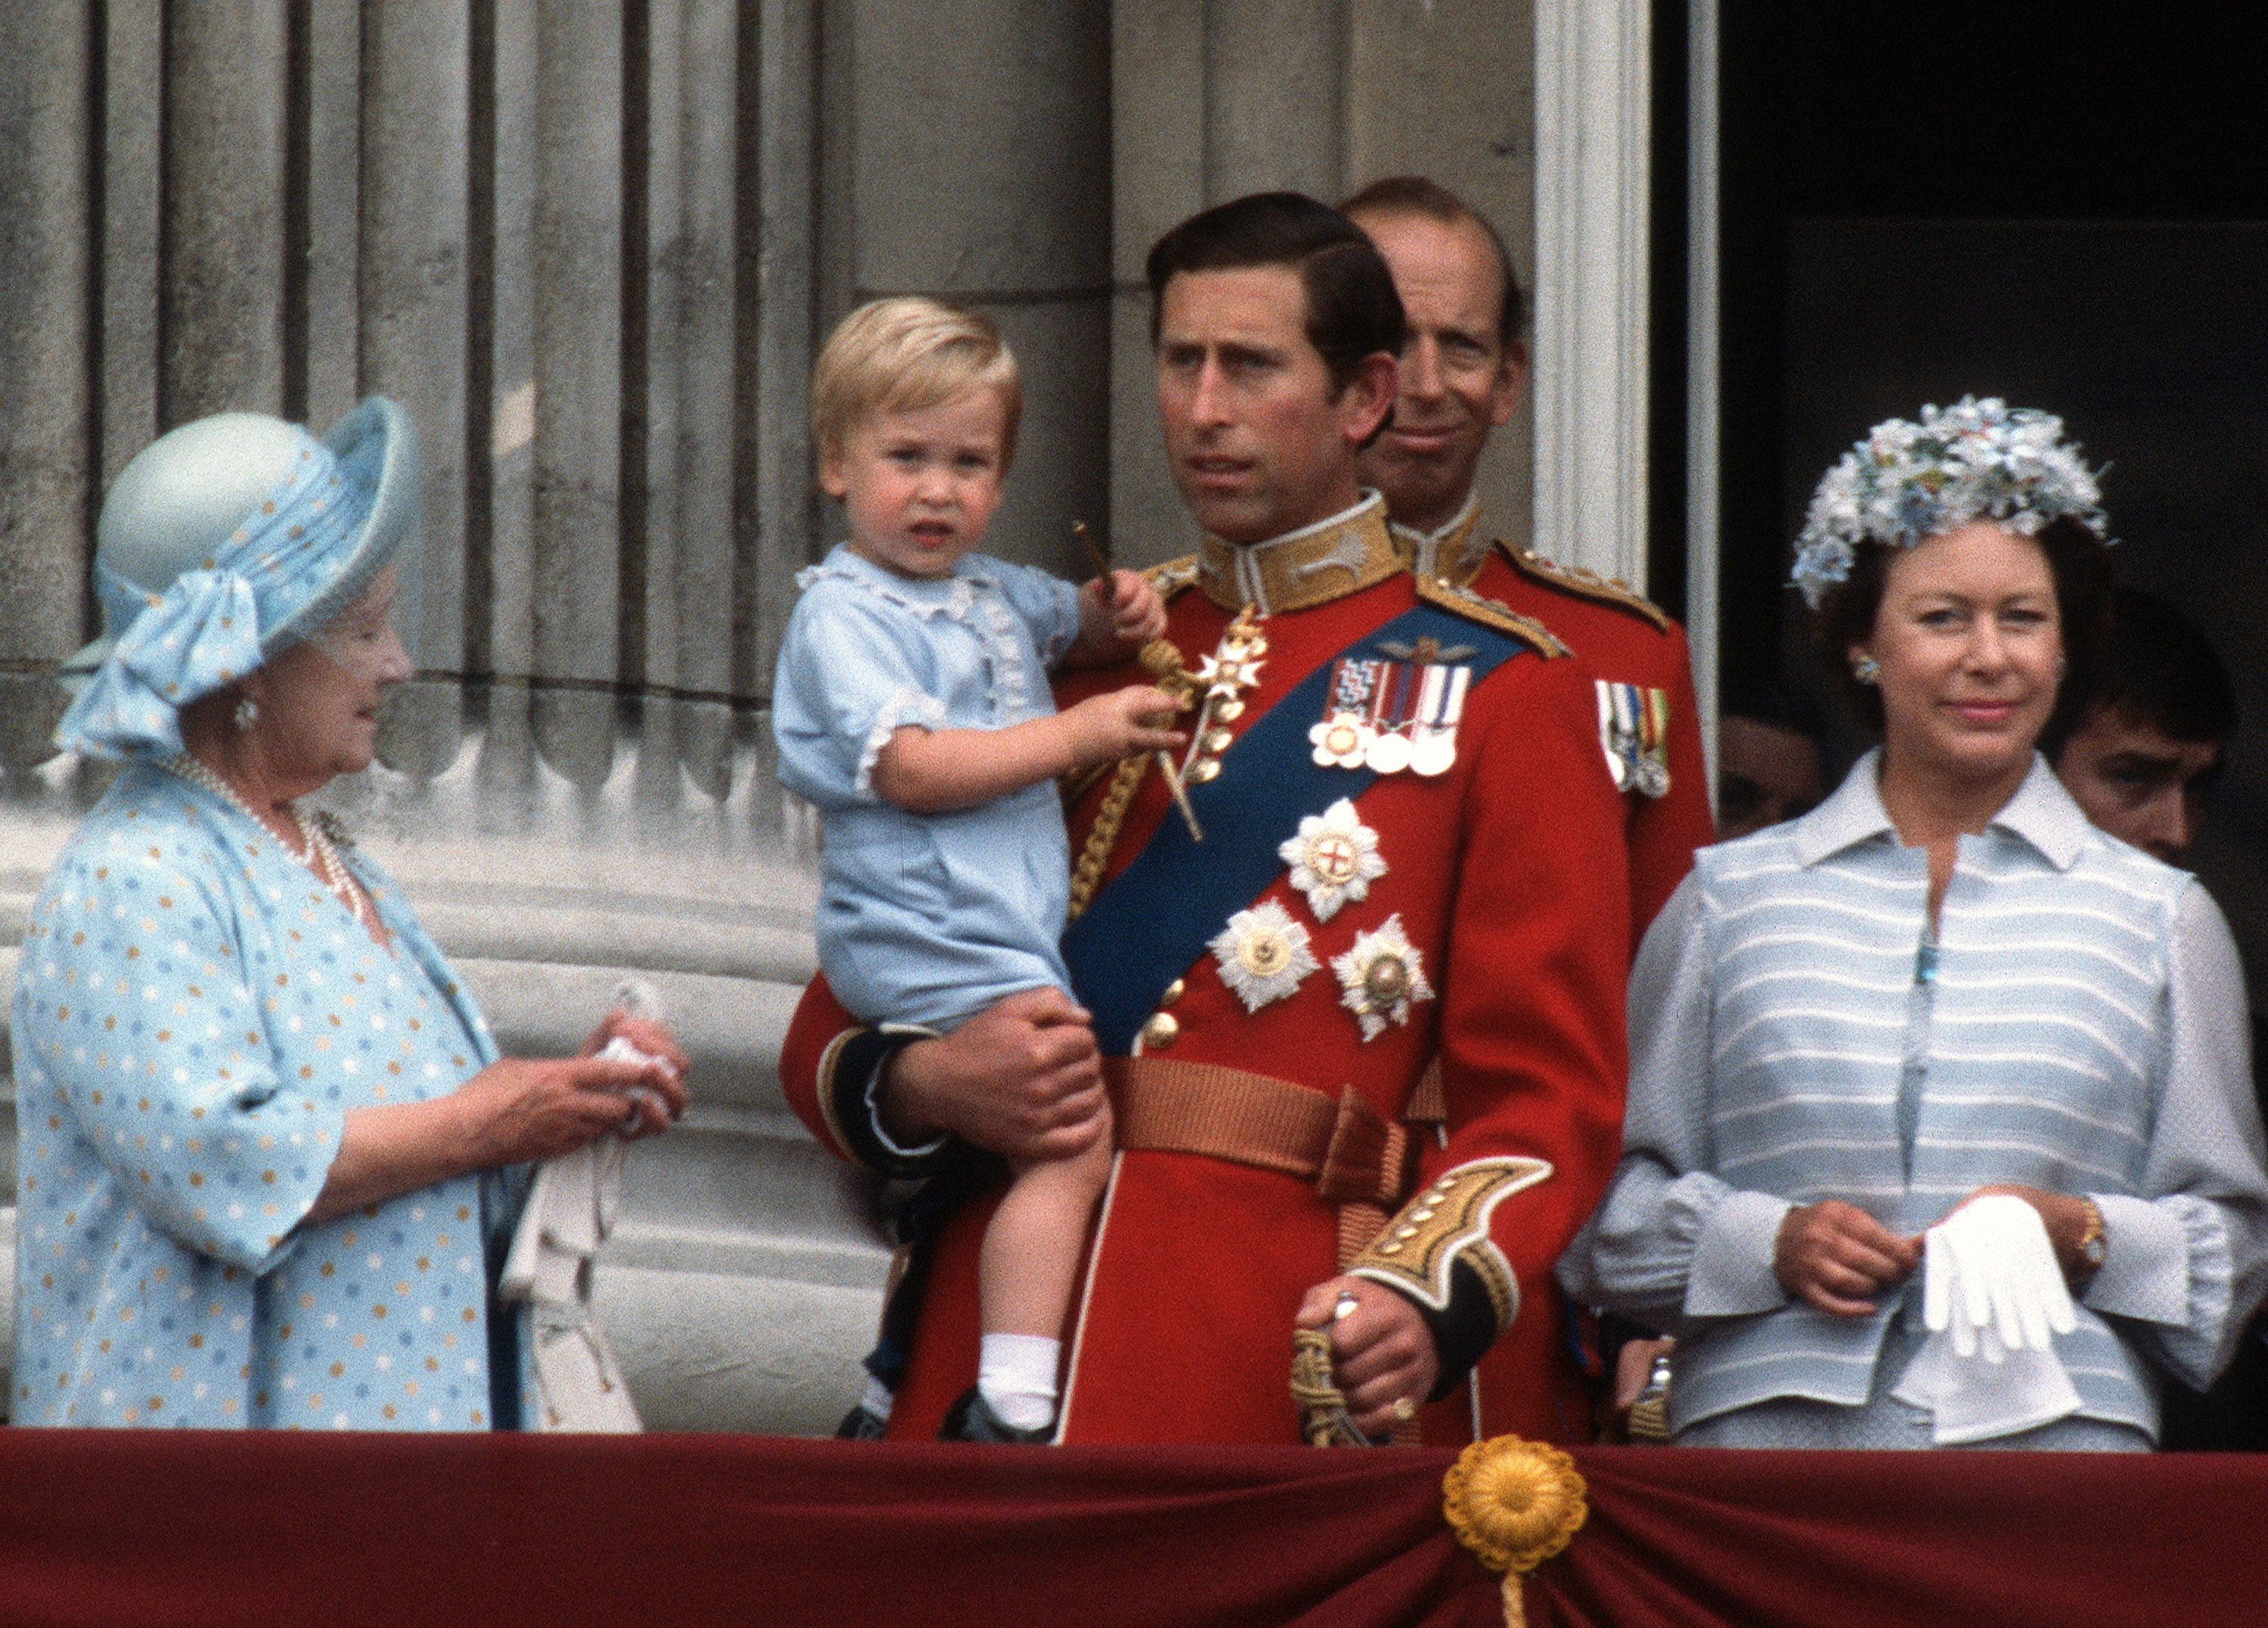 Prince Louis's First Trooping the Colour in 2019 Compared to